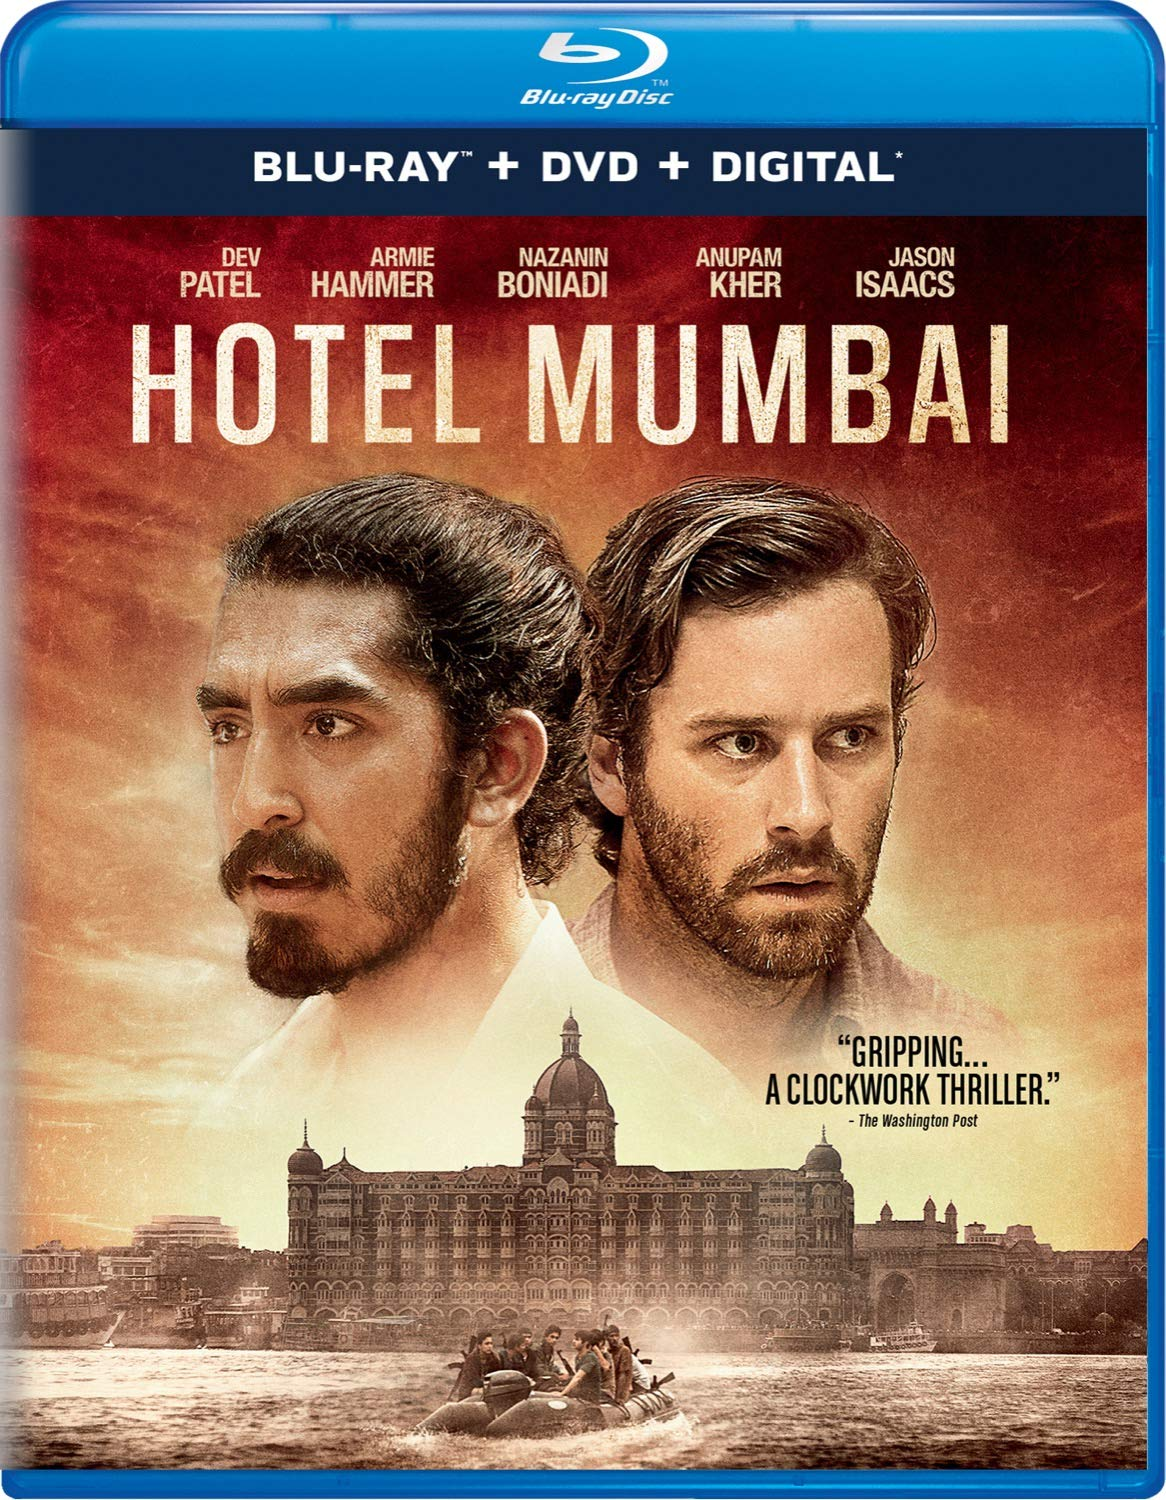 Hotel Mumbai (2018) Hollywood Movie [Dual Audio] [Hindi (Cleaned) or English] 720p HEVC BluRay x265 AAC 850MB